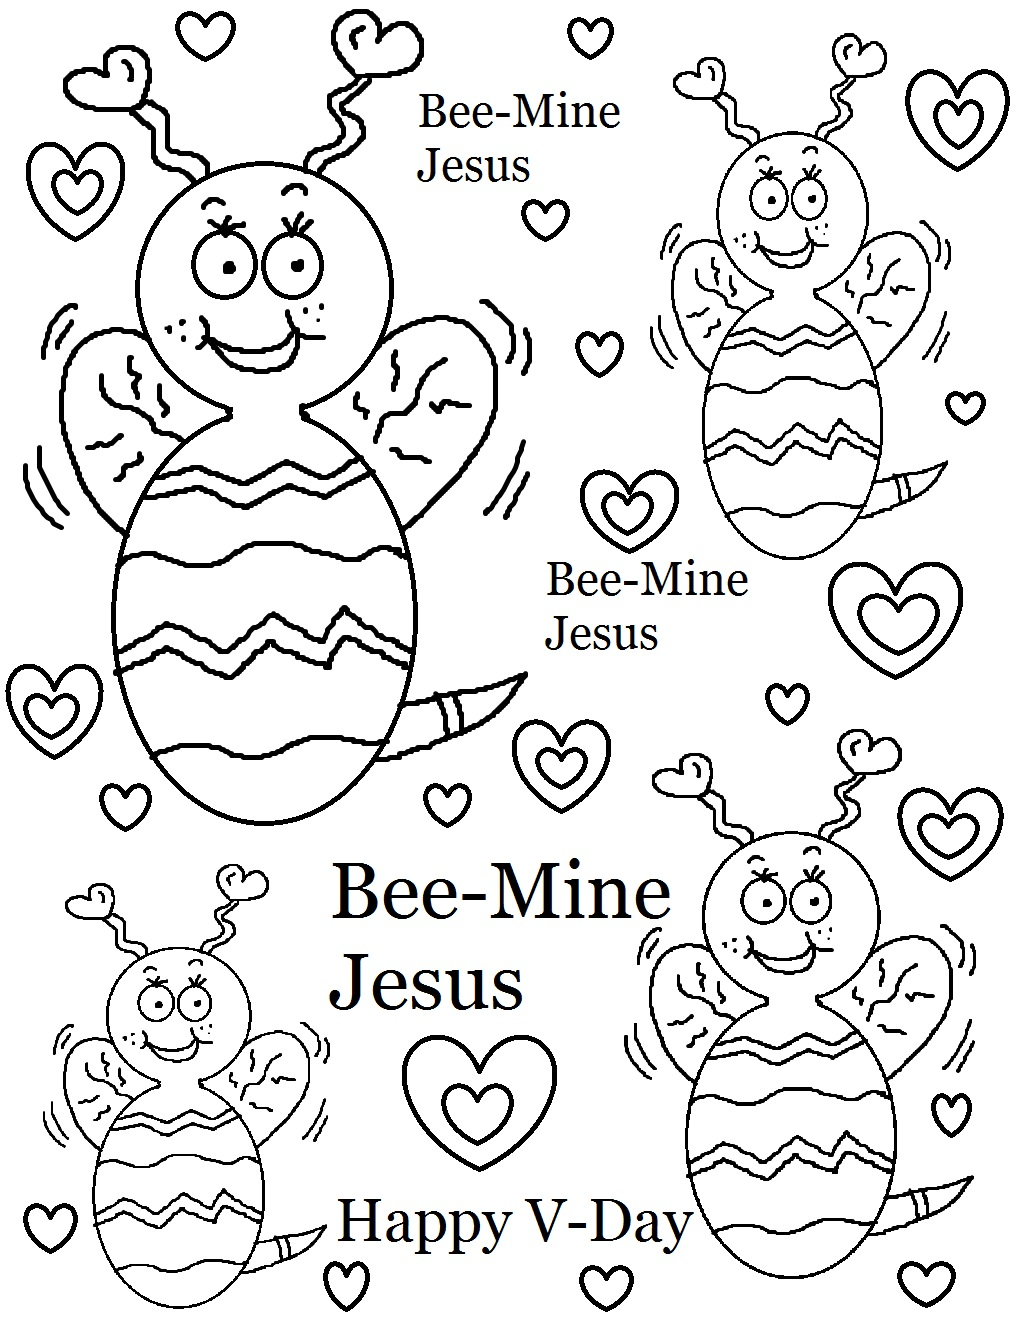 Christian Valentine Coloring Pages Valentine Coloring Pages 14  Coloring Kids